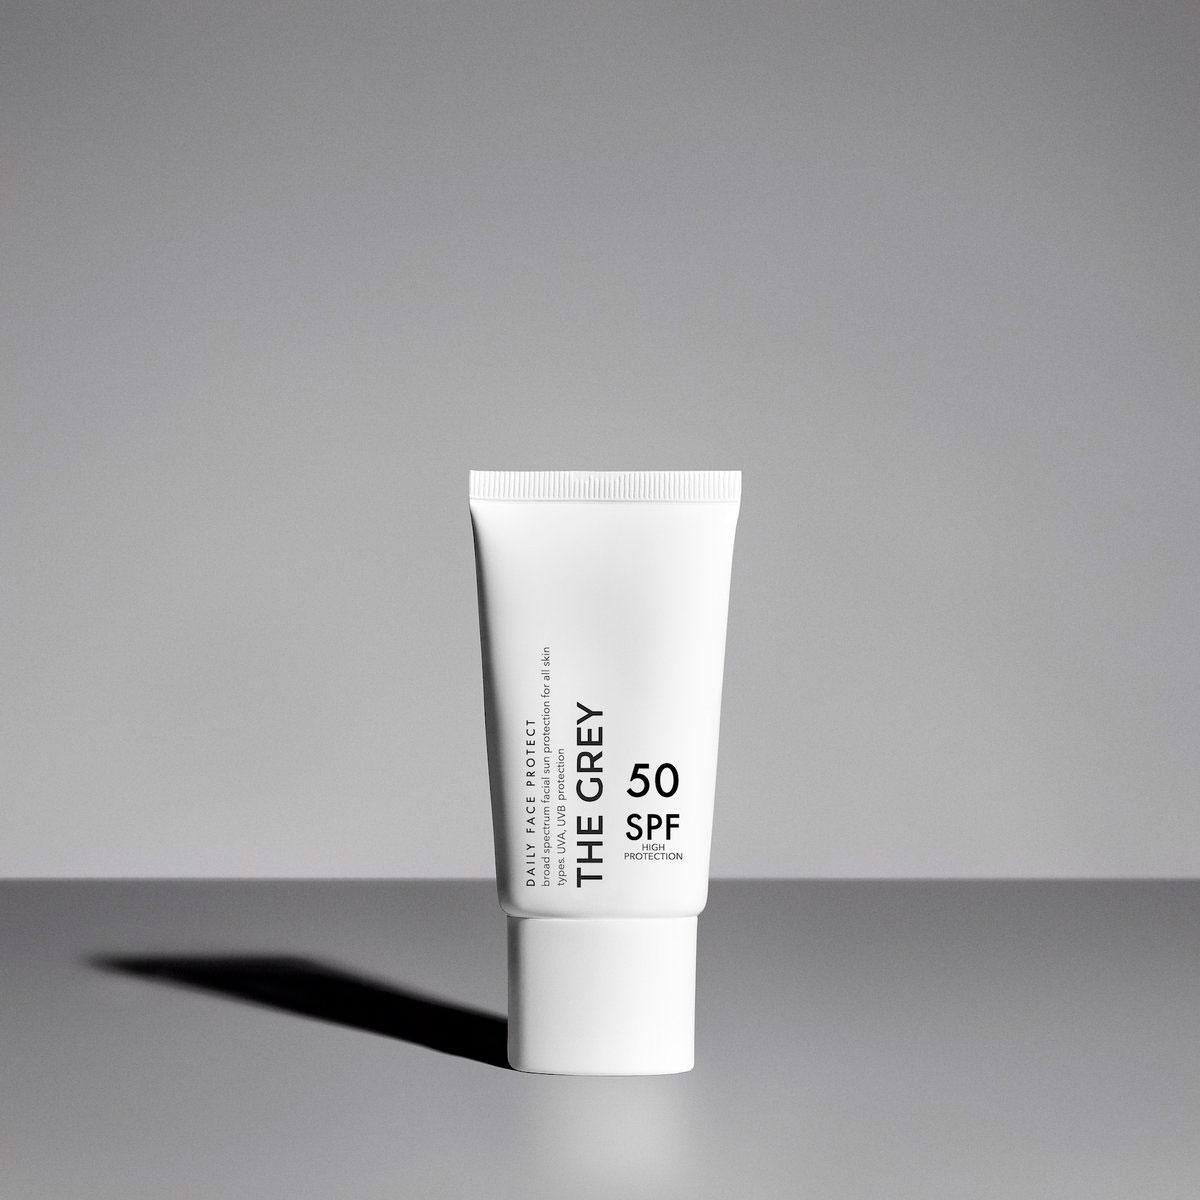 The Grey Daily Face Protect sunscreen in white bottle against grey background